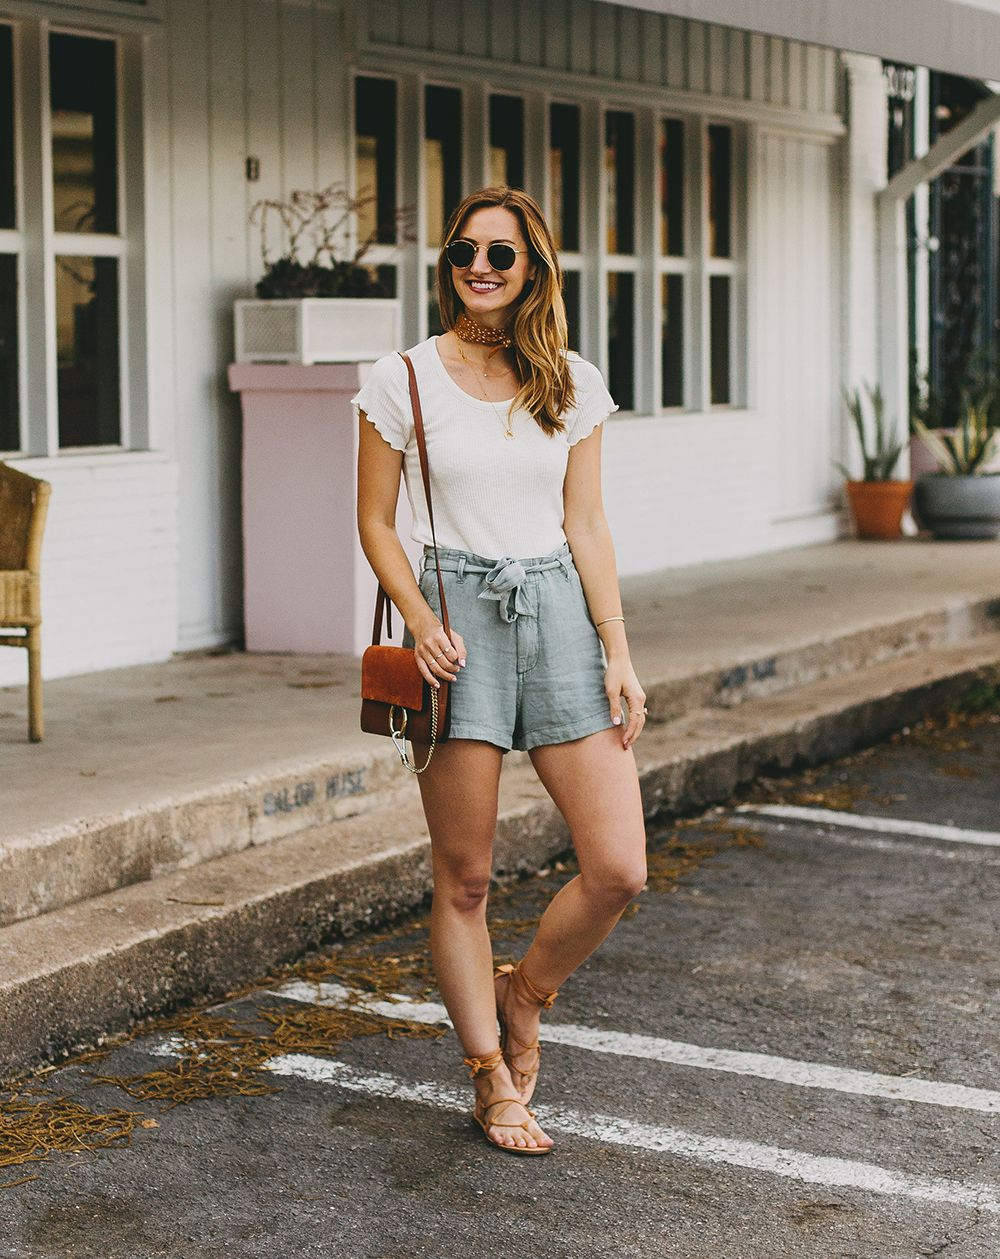 Summer Trend Tie Waist Shorts Livvyland Short Outfits Chic Clothing Style High Waisted Shorts Outfit